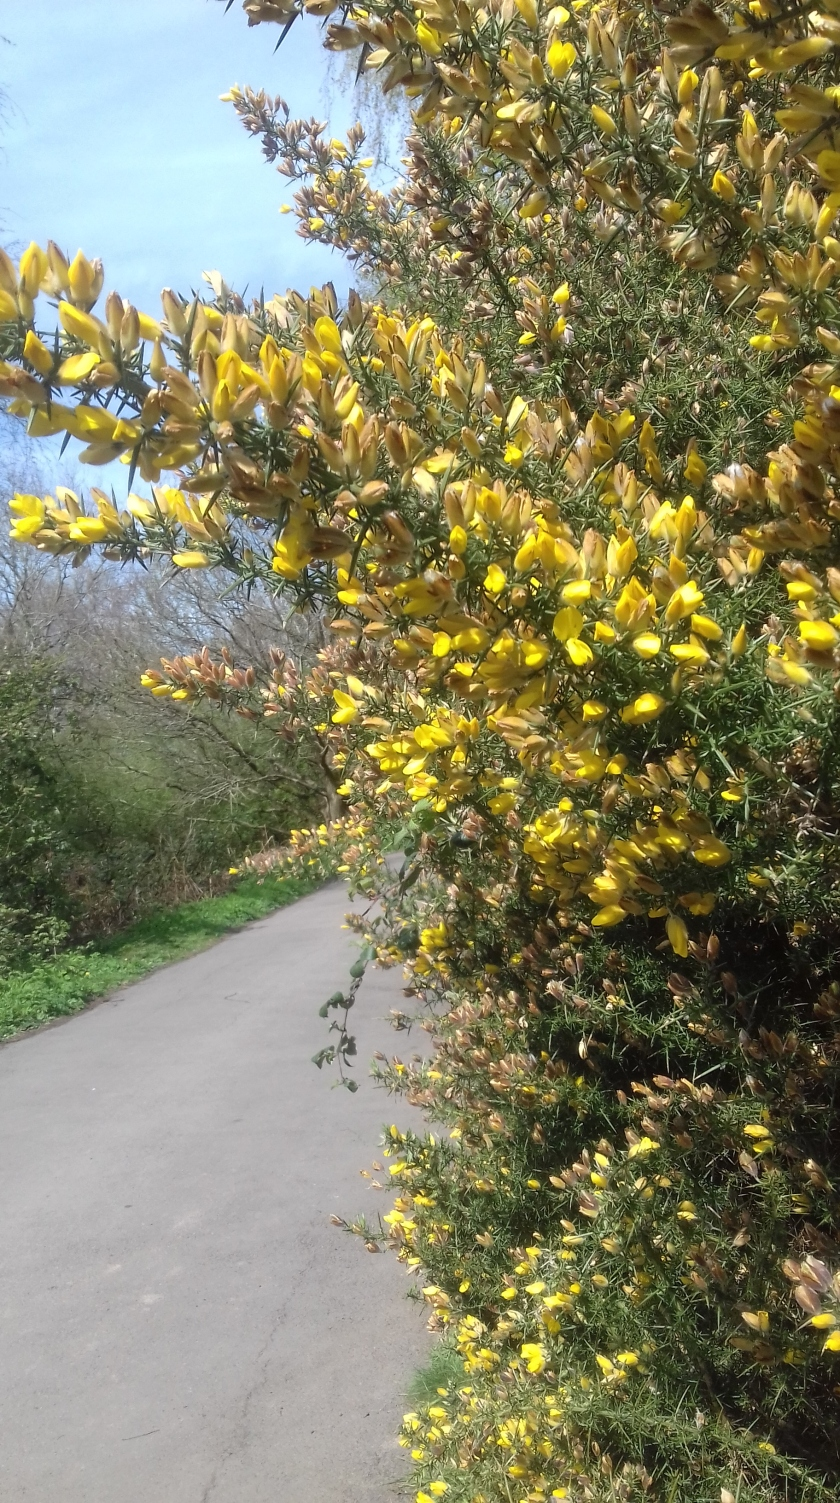 Gorse bush at the side of the road.